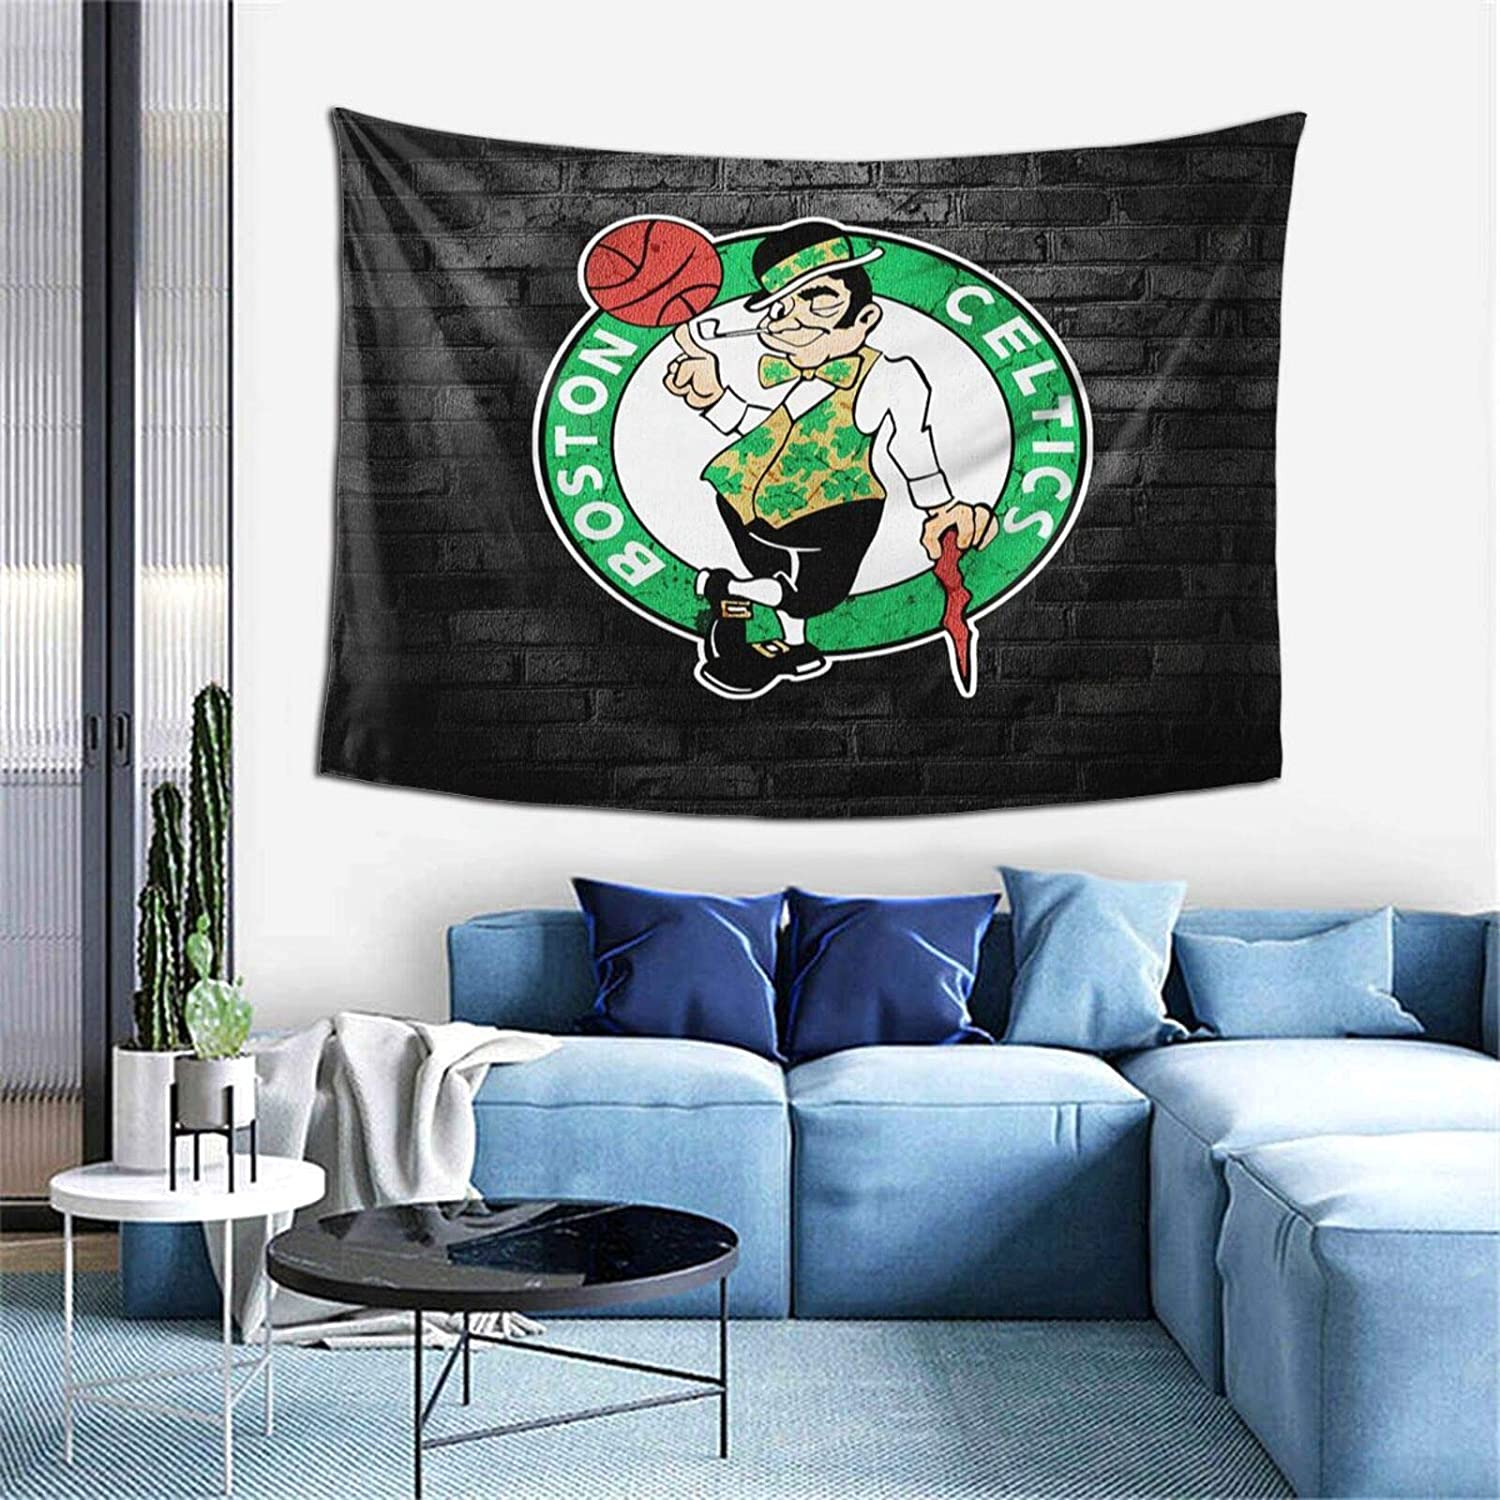 Mabell Boston Basketball Sports Celtics Wall Hanging Tapestry, Sports Themed Party Decoration Boys Man Gifts Tapestries for Bedroom Living Room Dormitory One Size